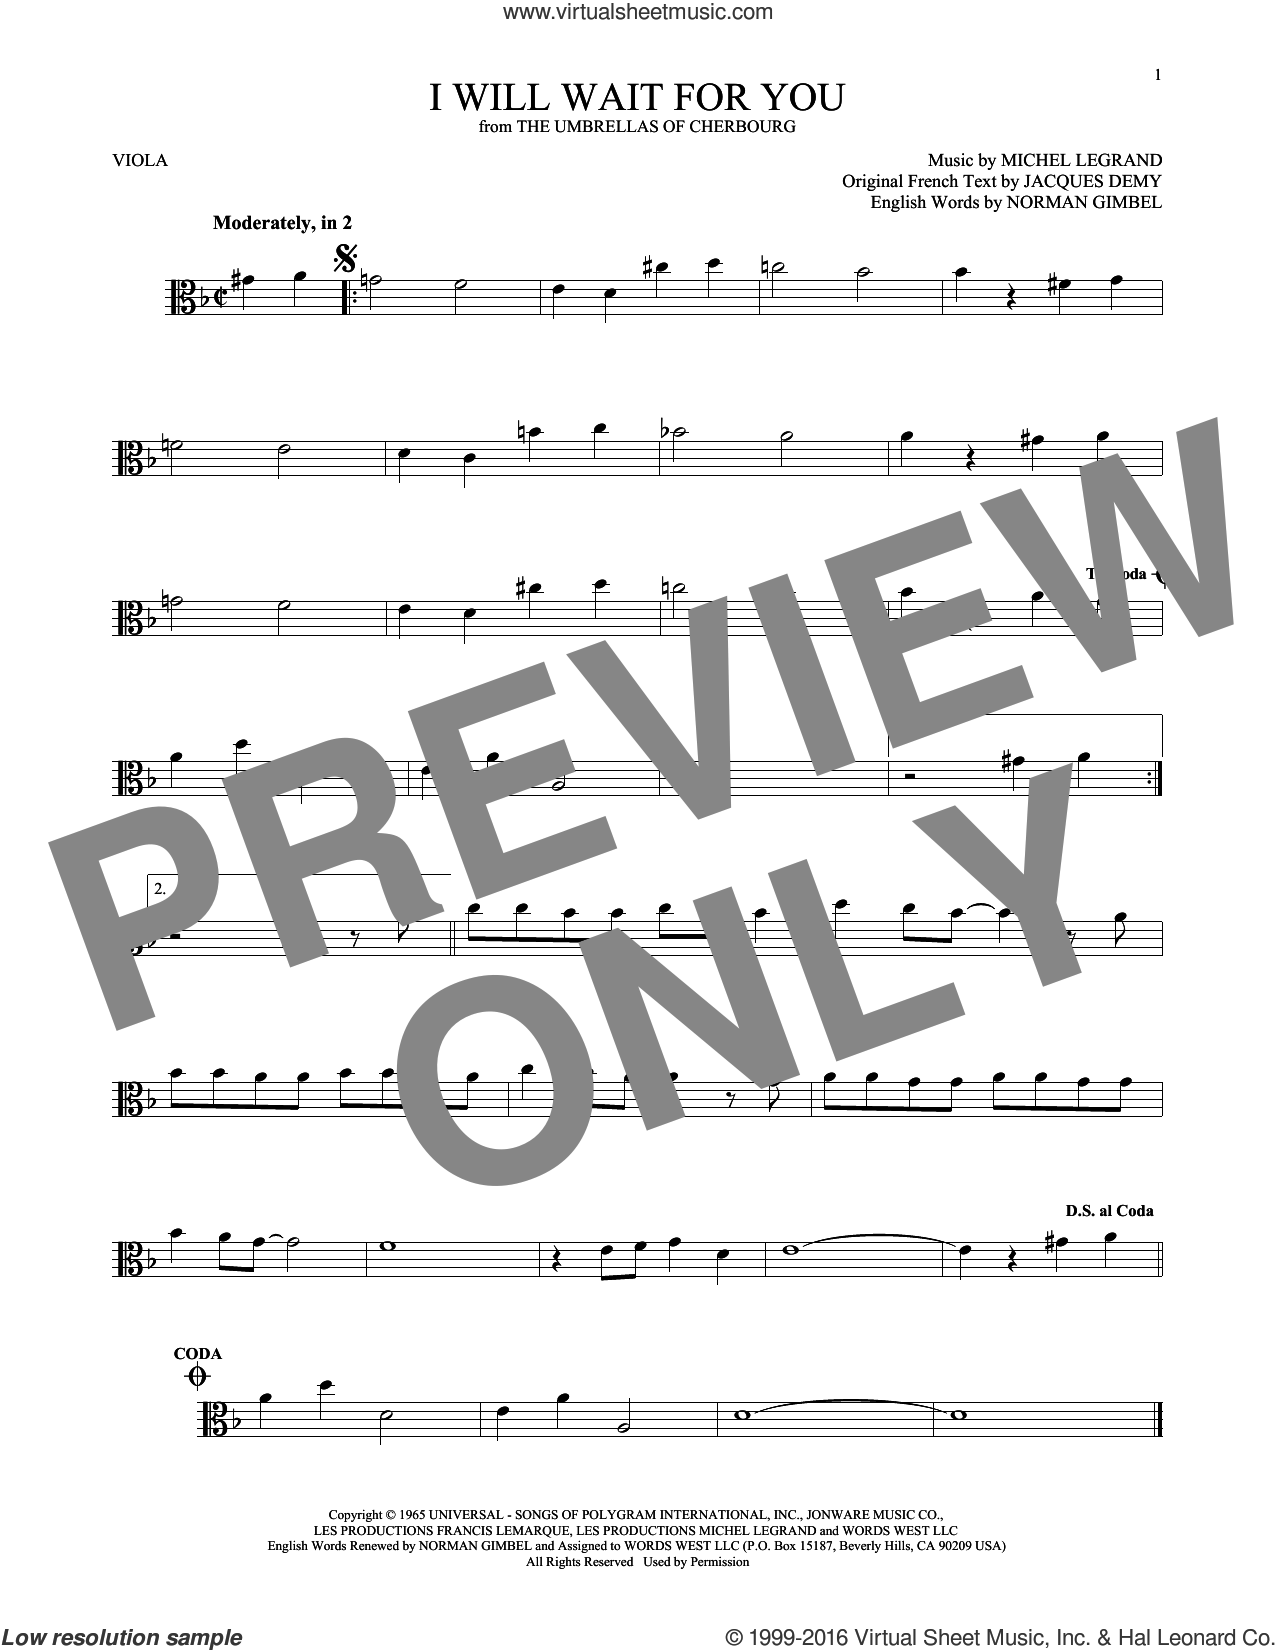 I Will Wait For You sheet music for viola solo by Michel Legrand, Jacques Demy and Norman Gimbel, intermediate